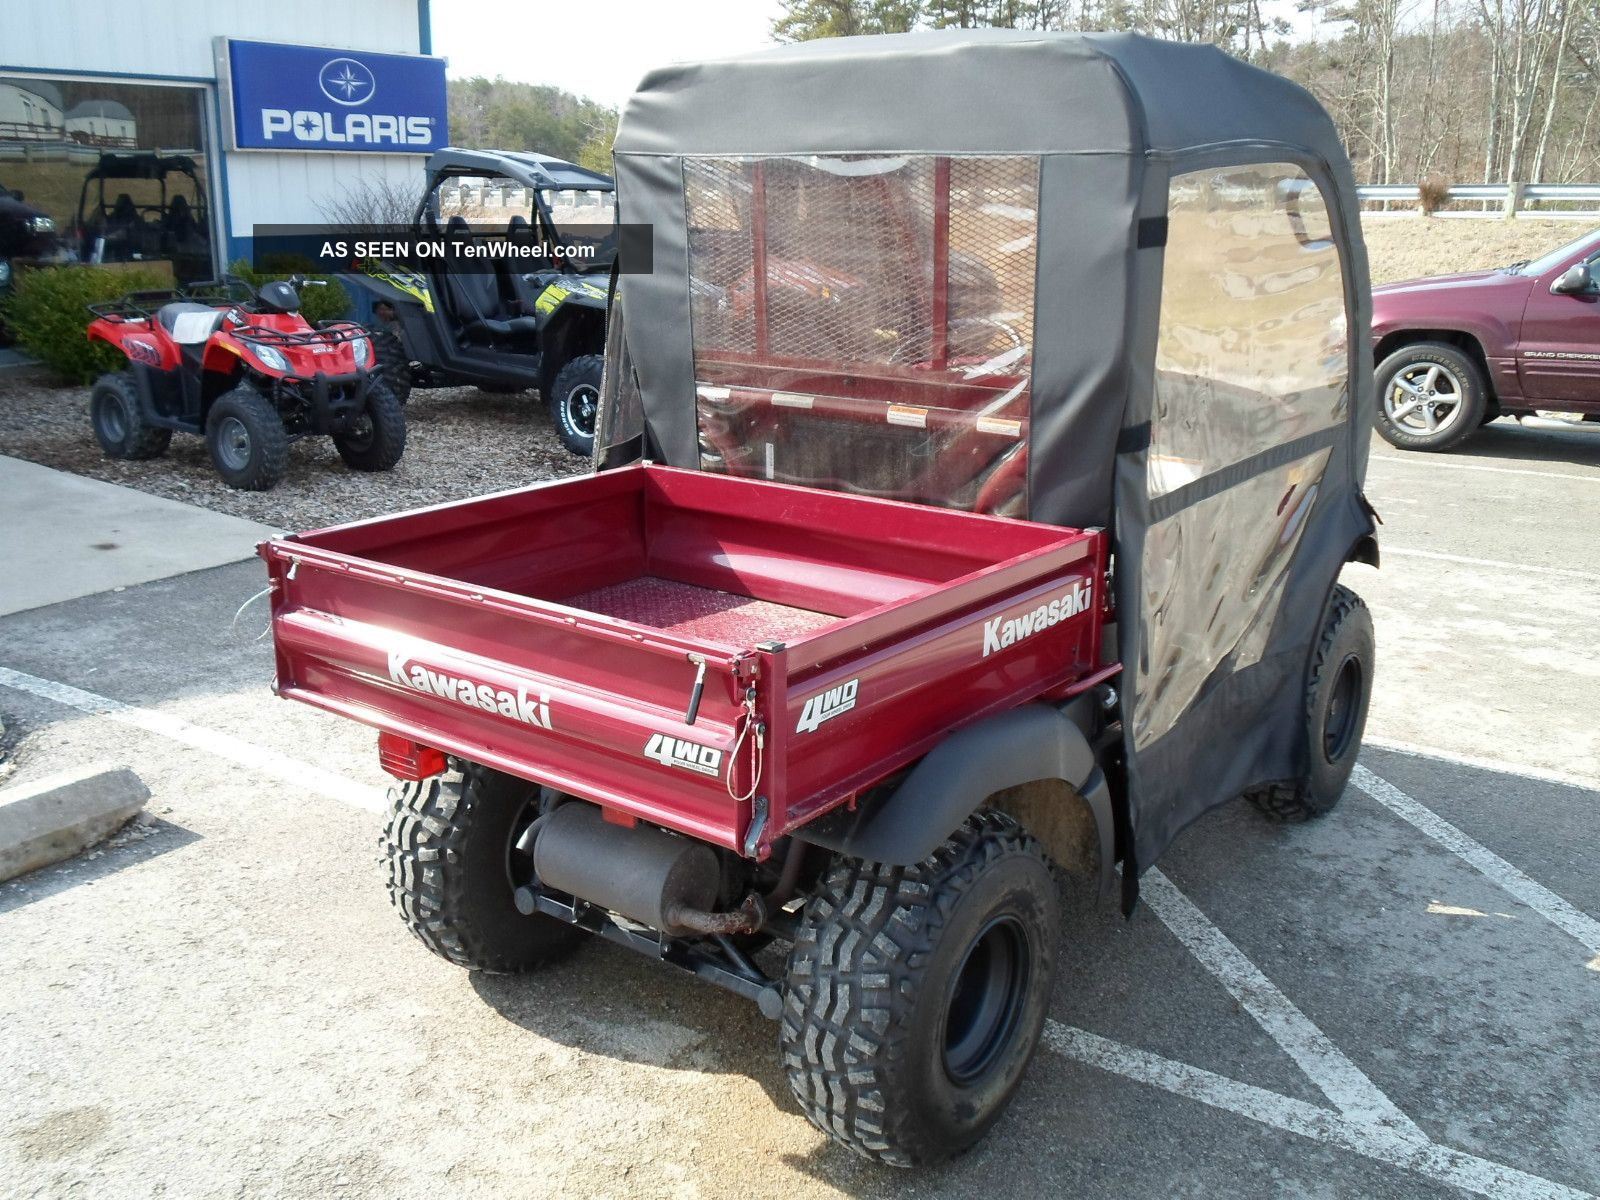 Mule 610 Bumper : Kawasaki mule lookup beforebuying